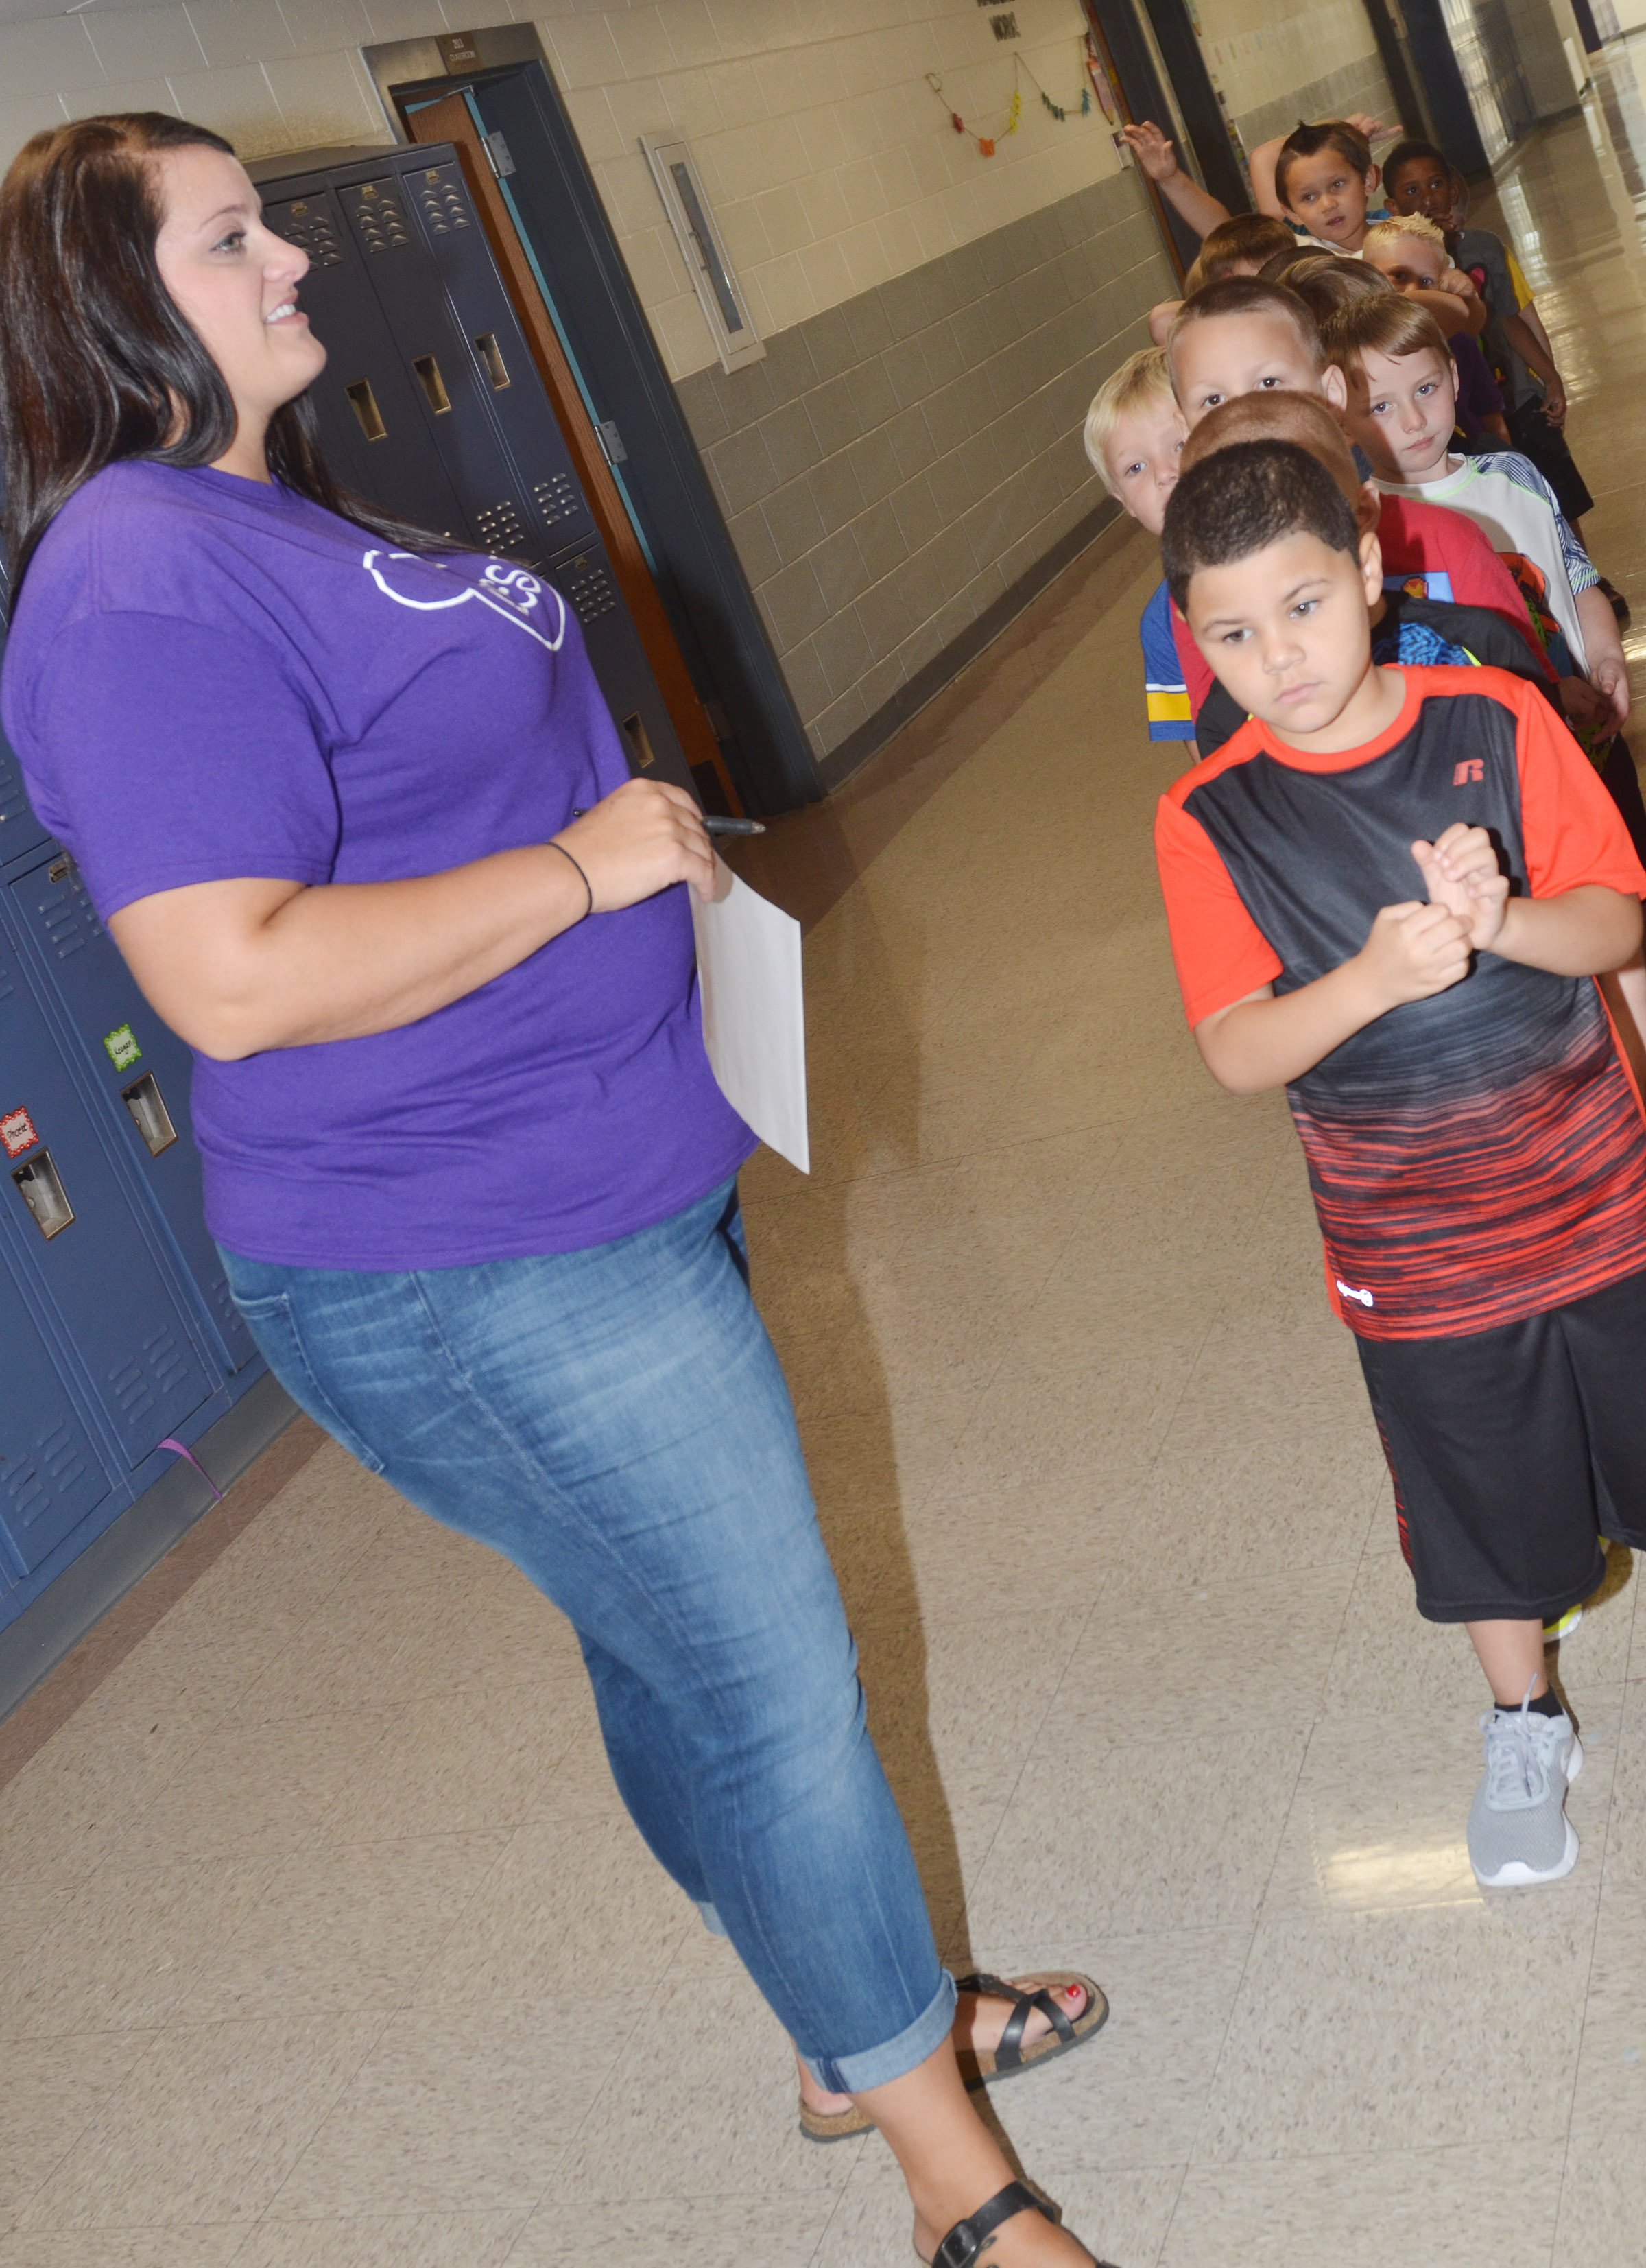 CES first-grade teacher Miriah Cox waits with her students as they take a restroom break.